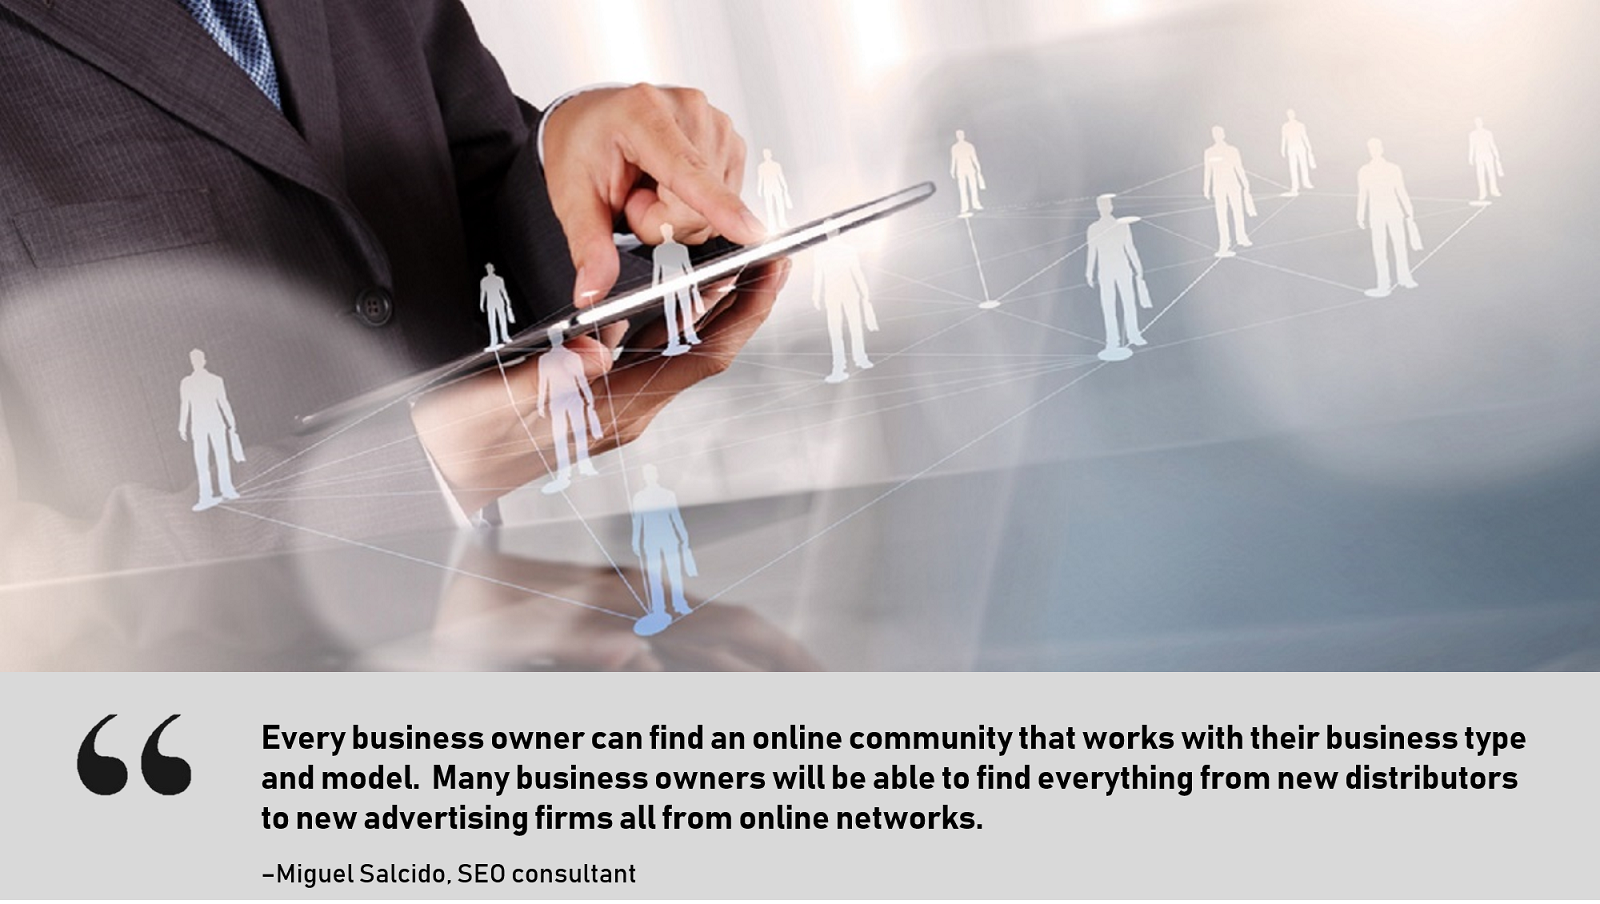 Every business owner can find an online community that works with their business type and model.